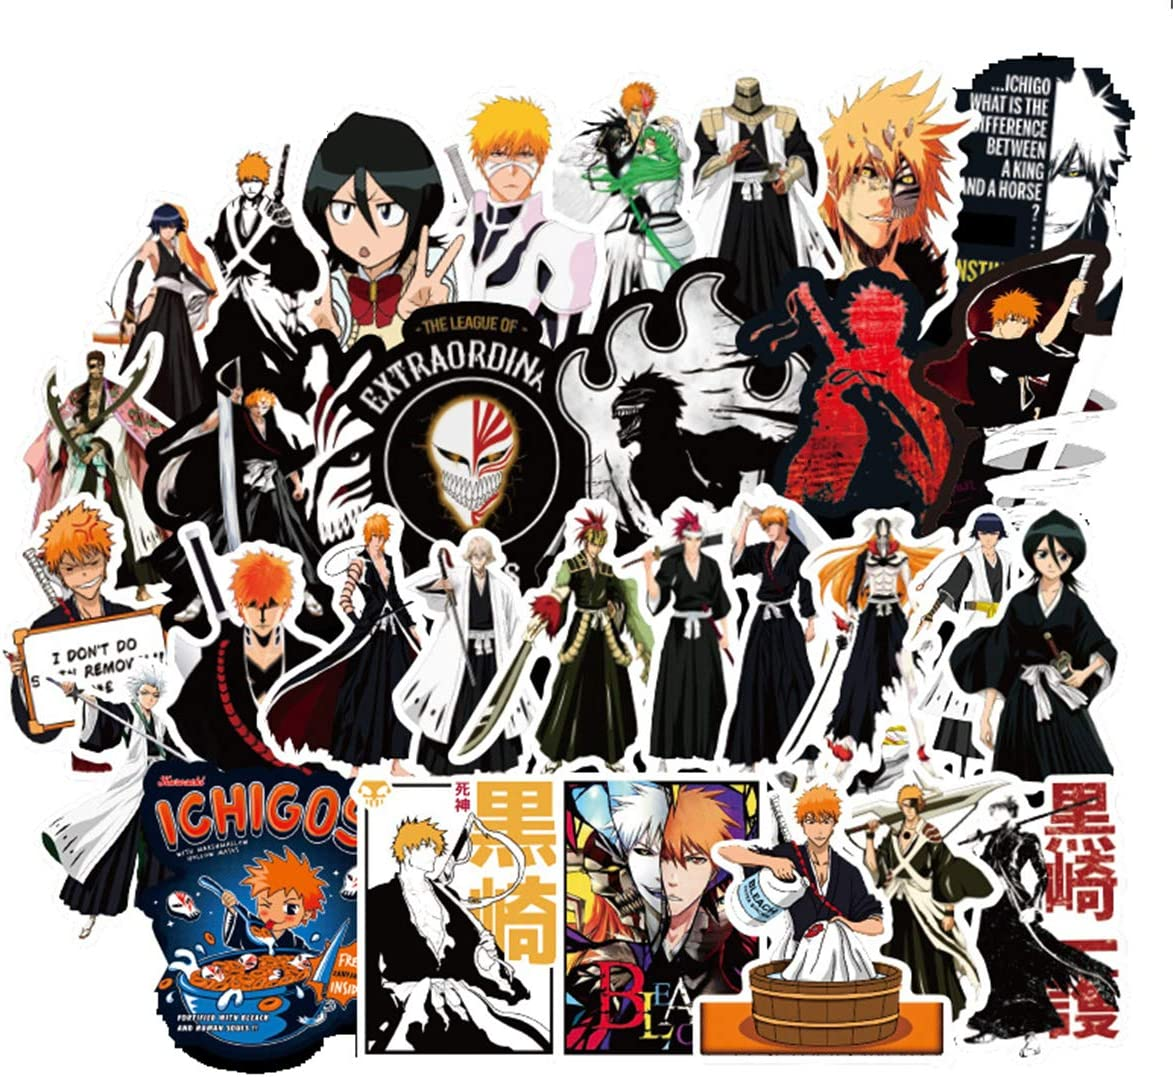 Bleach Waterproof Stickers/Decals (50 pcs) of Japanese Anime Cartoon for Laptop Skateboard Water Bottle Phone Car Bicycle Luggage Guitar Computer PS4 (Bleach)